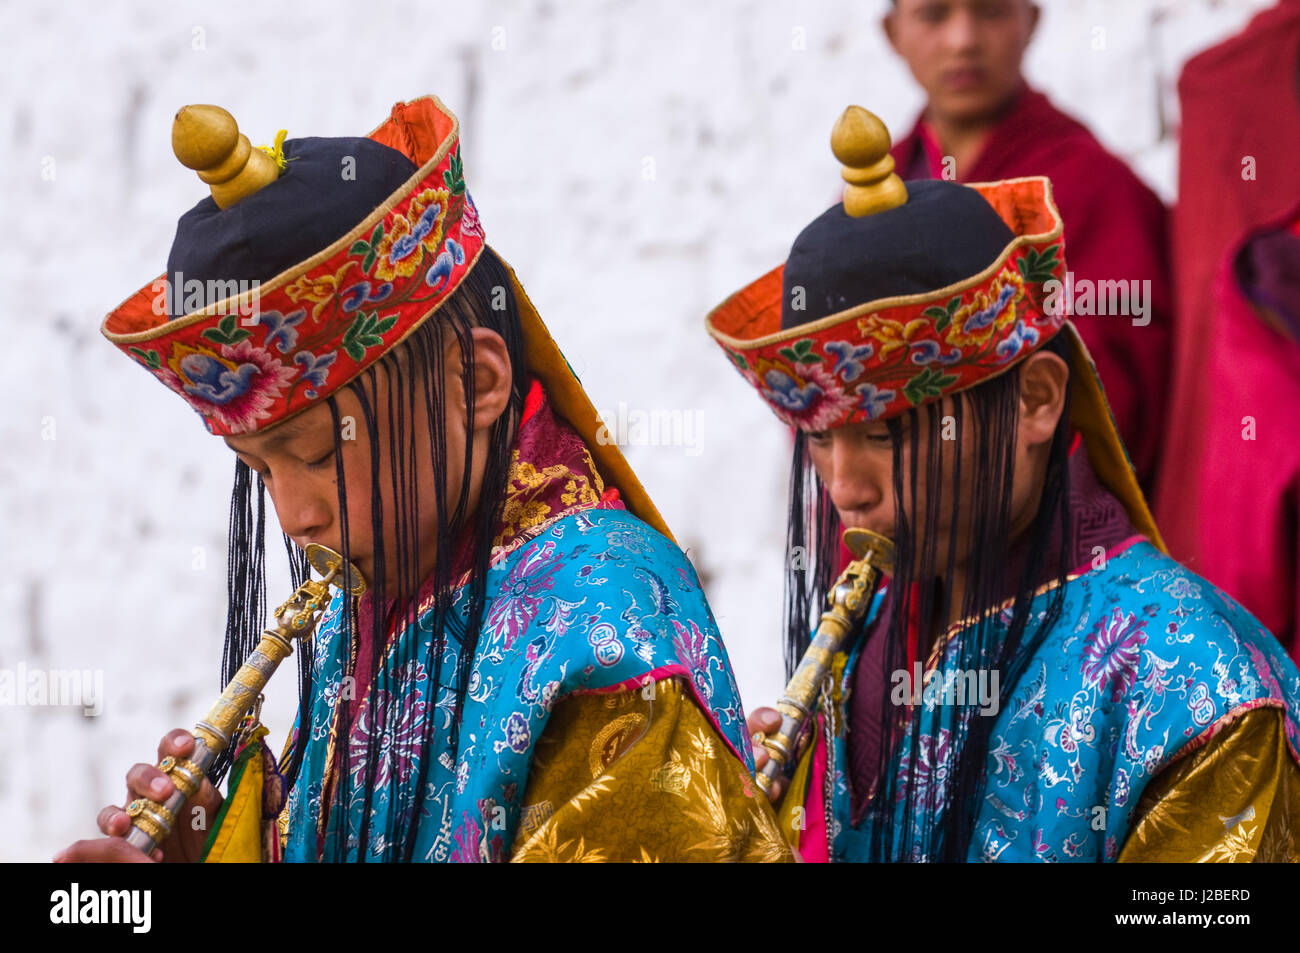 Buddhists playing the flute at religious festivity, Paro